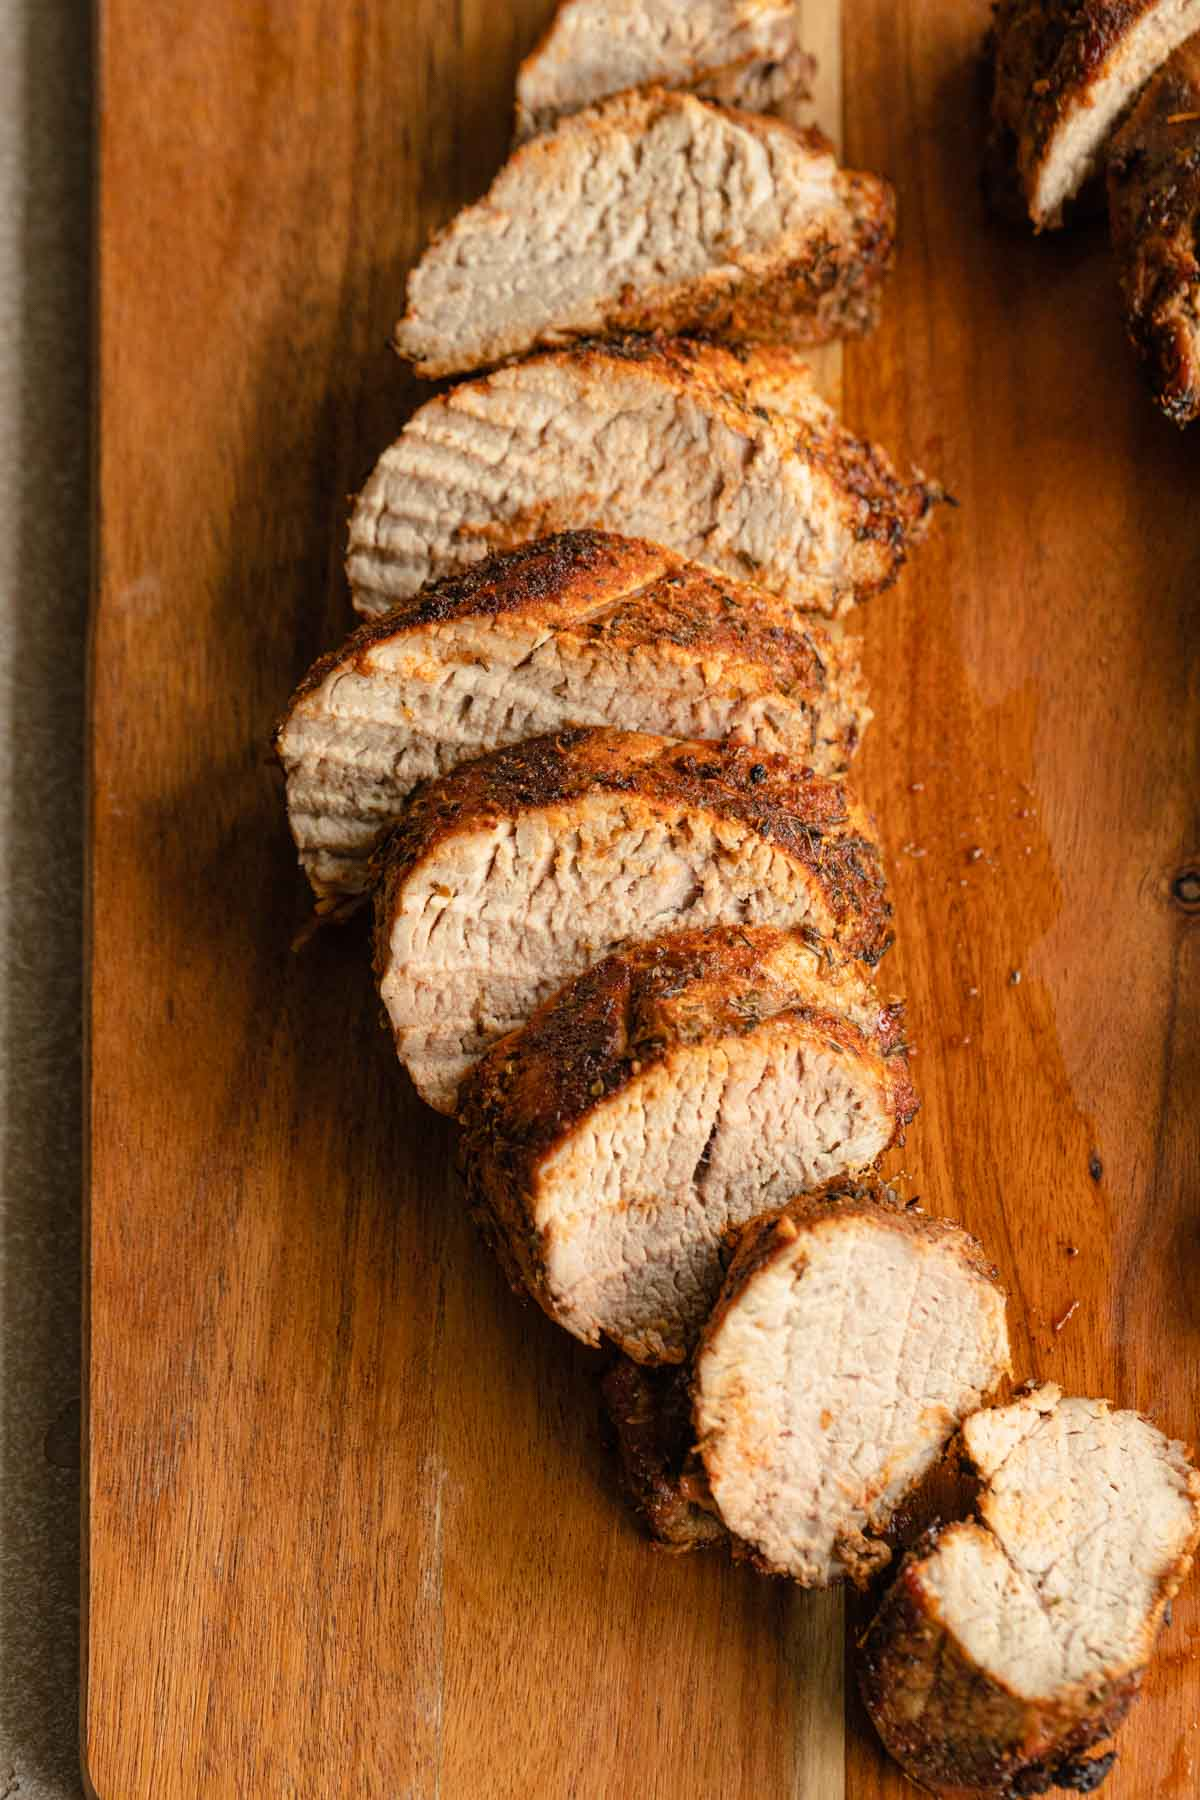 Close up view of pork tenderloin slices on a wooden board.